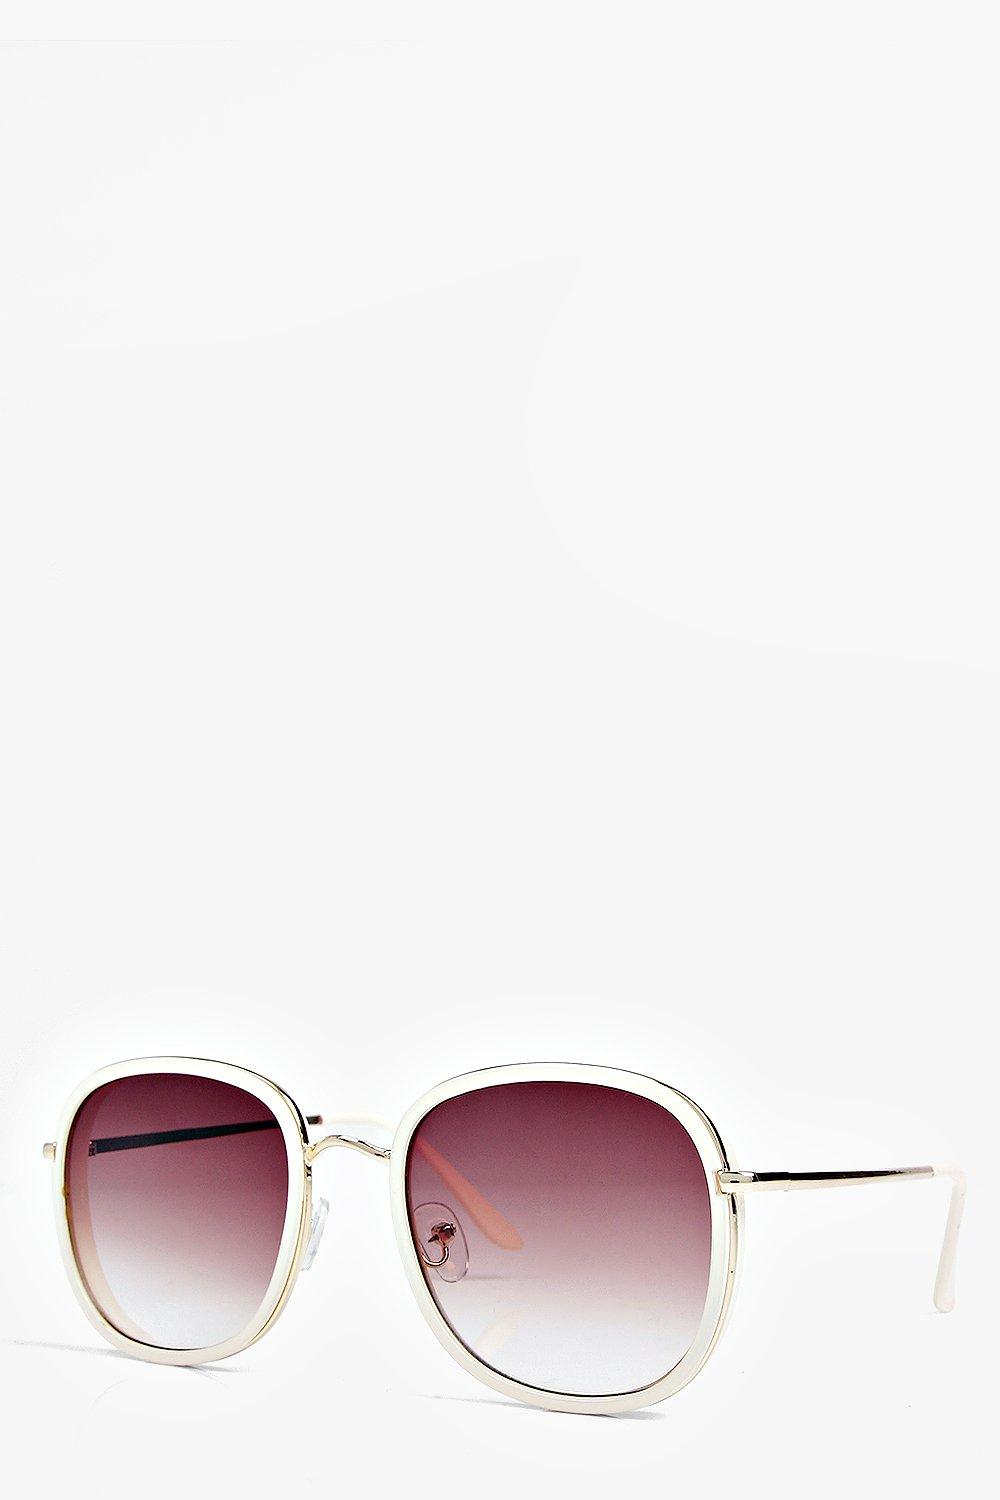 Boohoo Kayla Oversized Round Sunglasses in Nude (Pink)